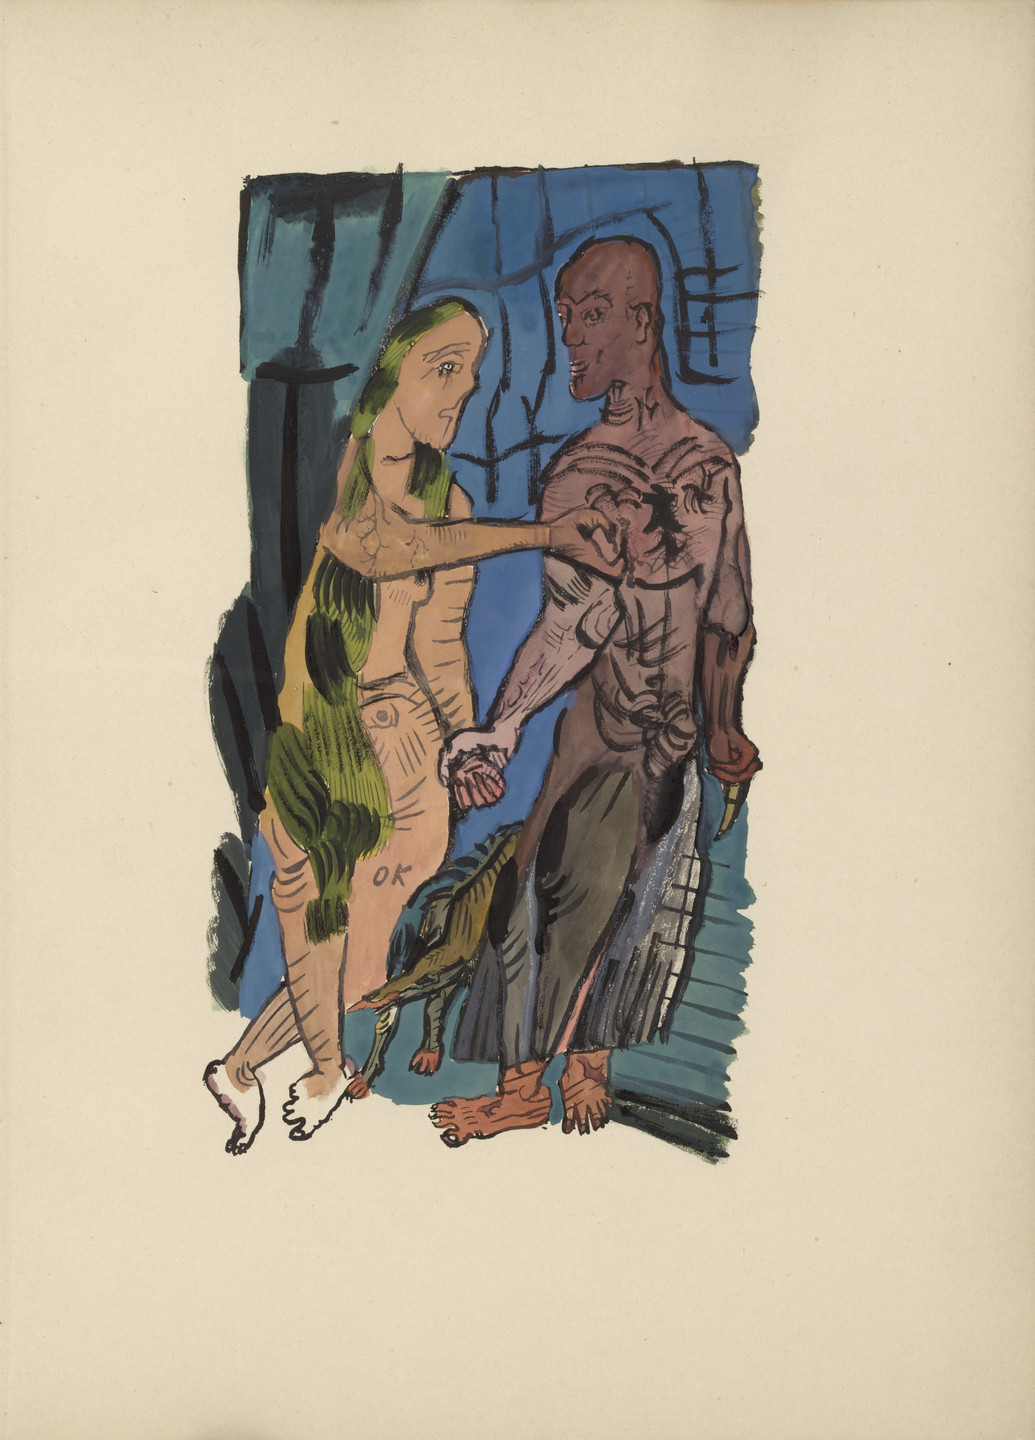 Oskar Kokoschka. Plate (folio 4) from Mörder, Hoffnung der Frauen (Murderer, Hope of Women). 1916 (original executed in 1910)